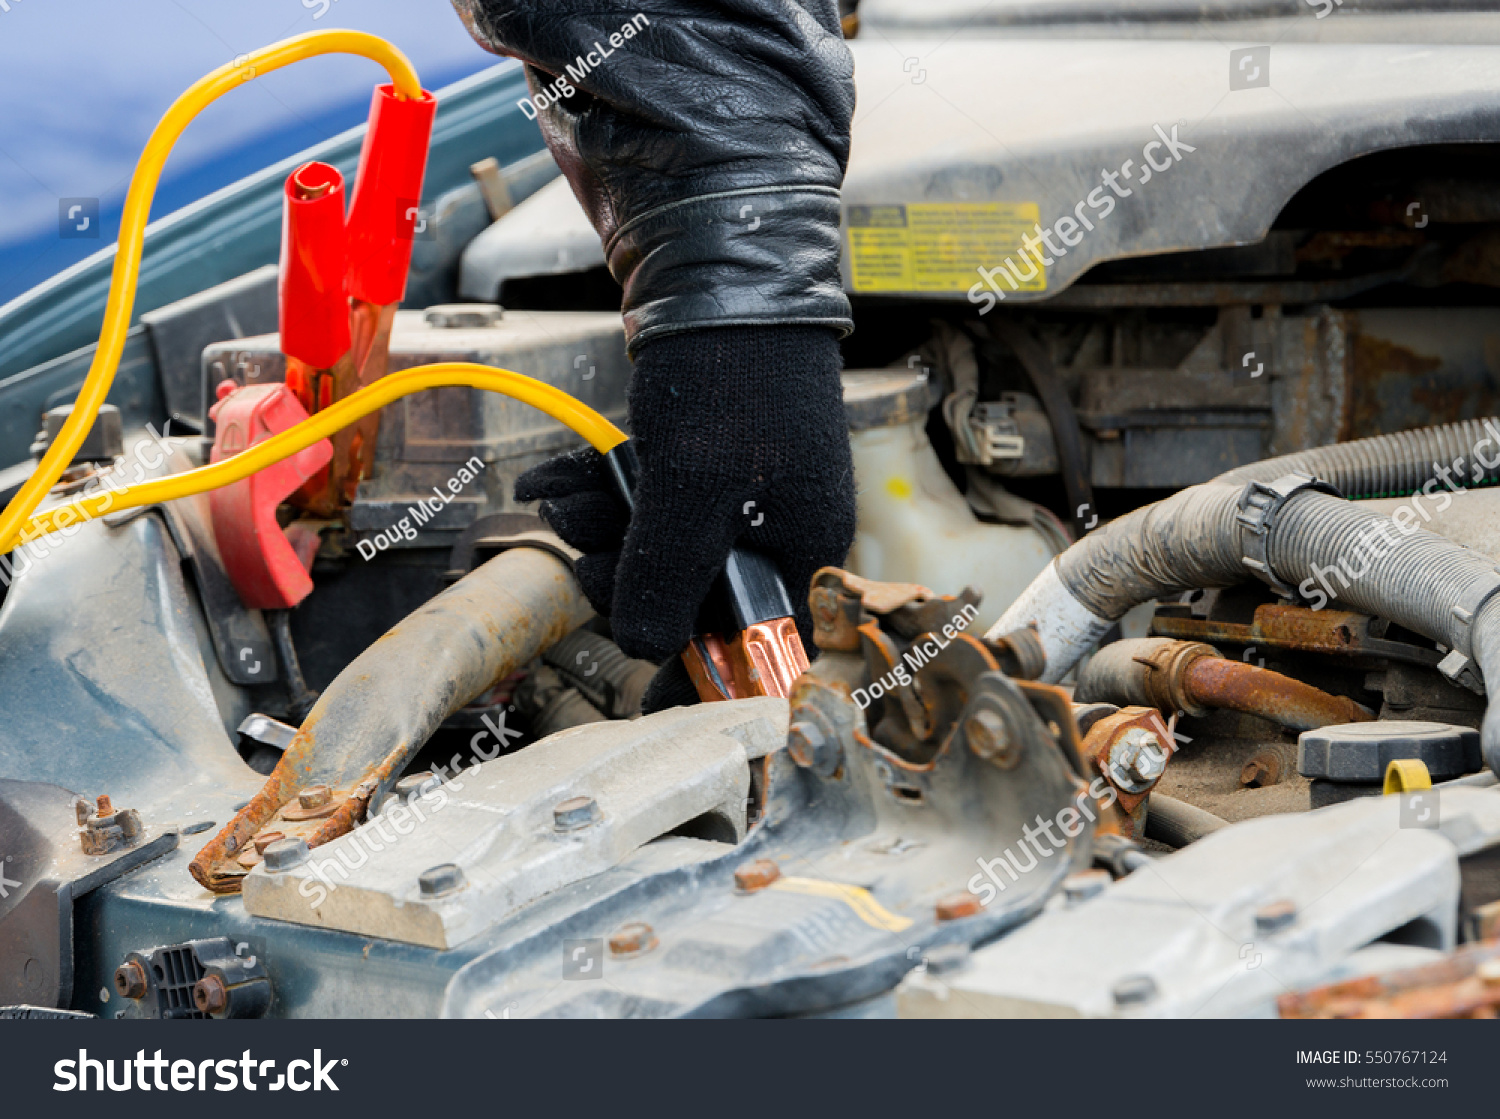 Attaching Jumper Cable Boost Car Positive Stock Photo (Edit